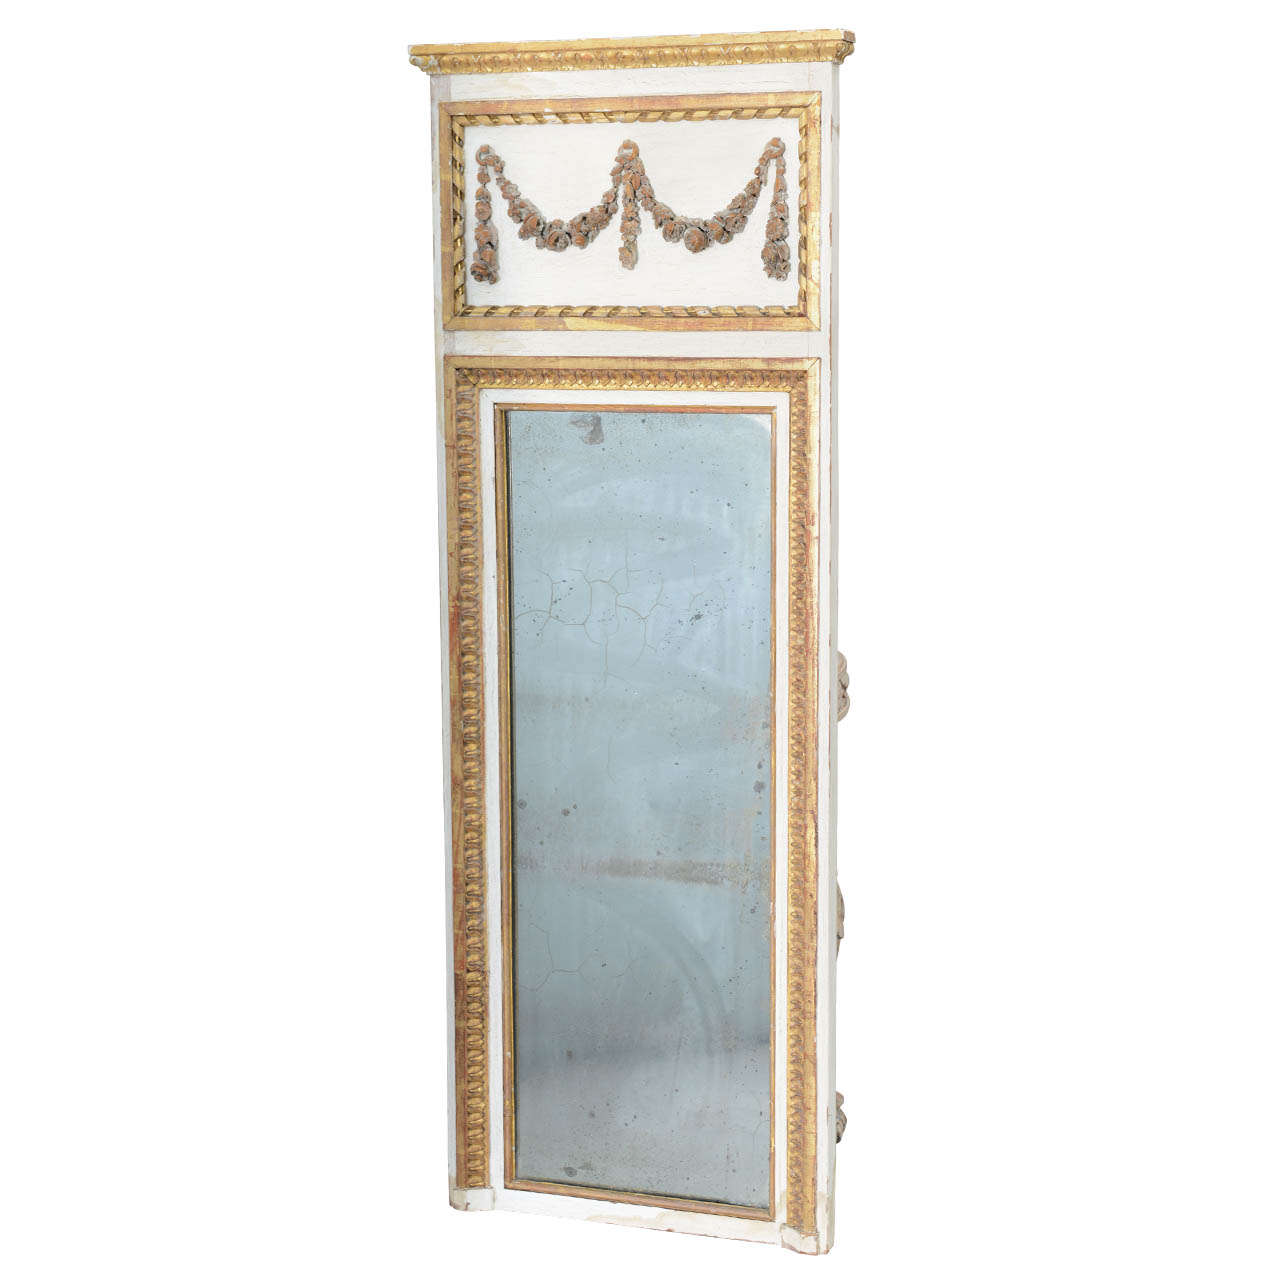 Narrow 19c. Painted and Parcel Gilt French Trumeau Mirror